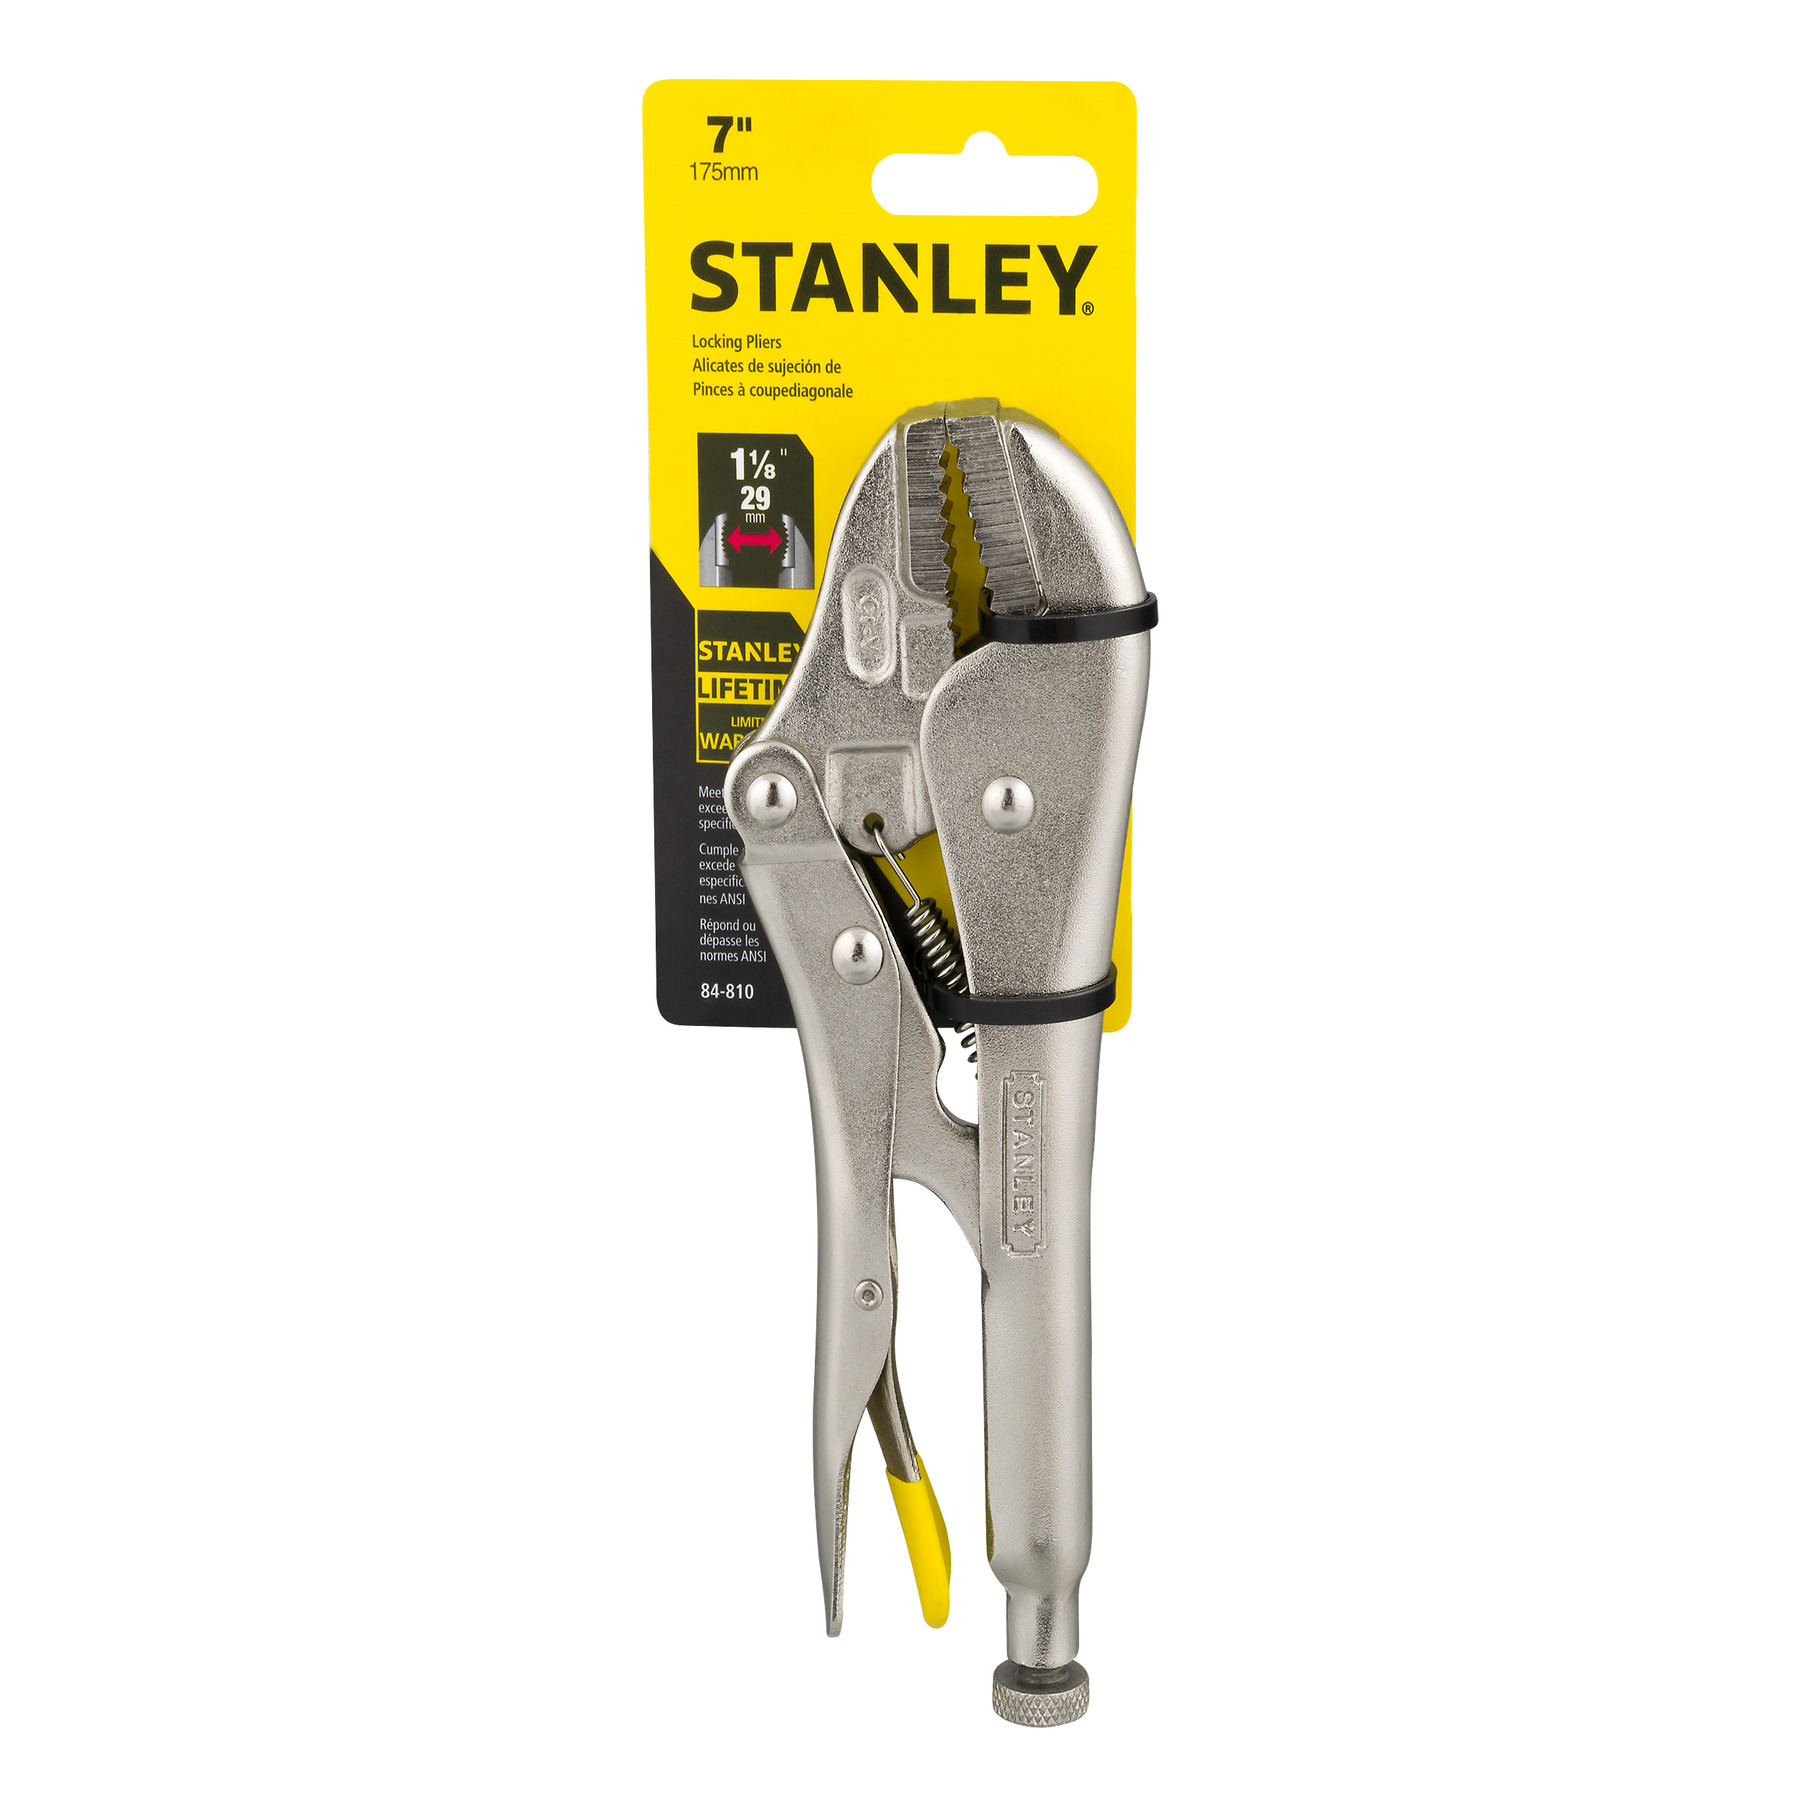 STANLEY 84-810 7.5-Inch MaxSteel Straight Jaw Locking Pliers